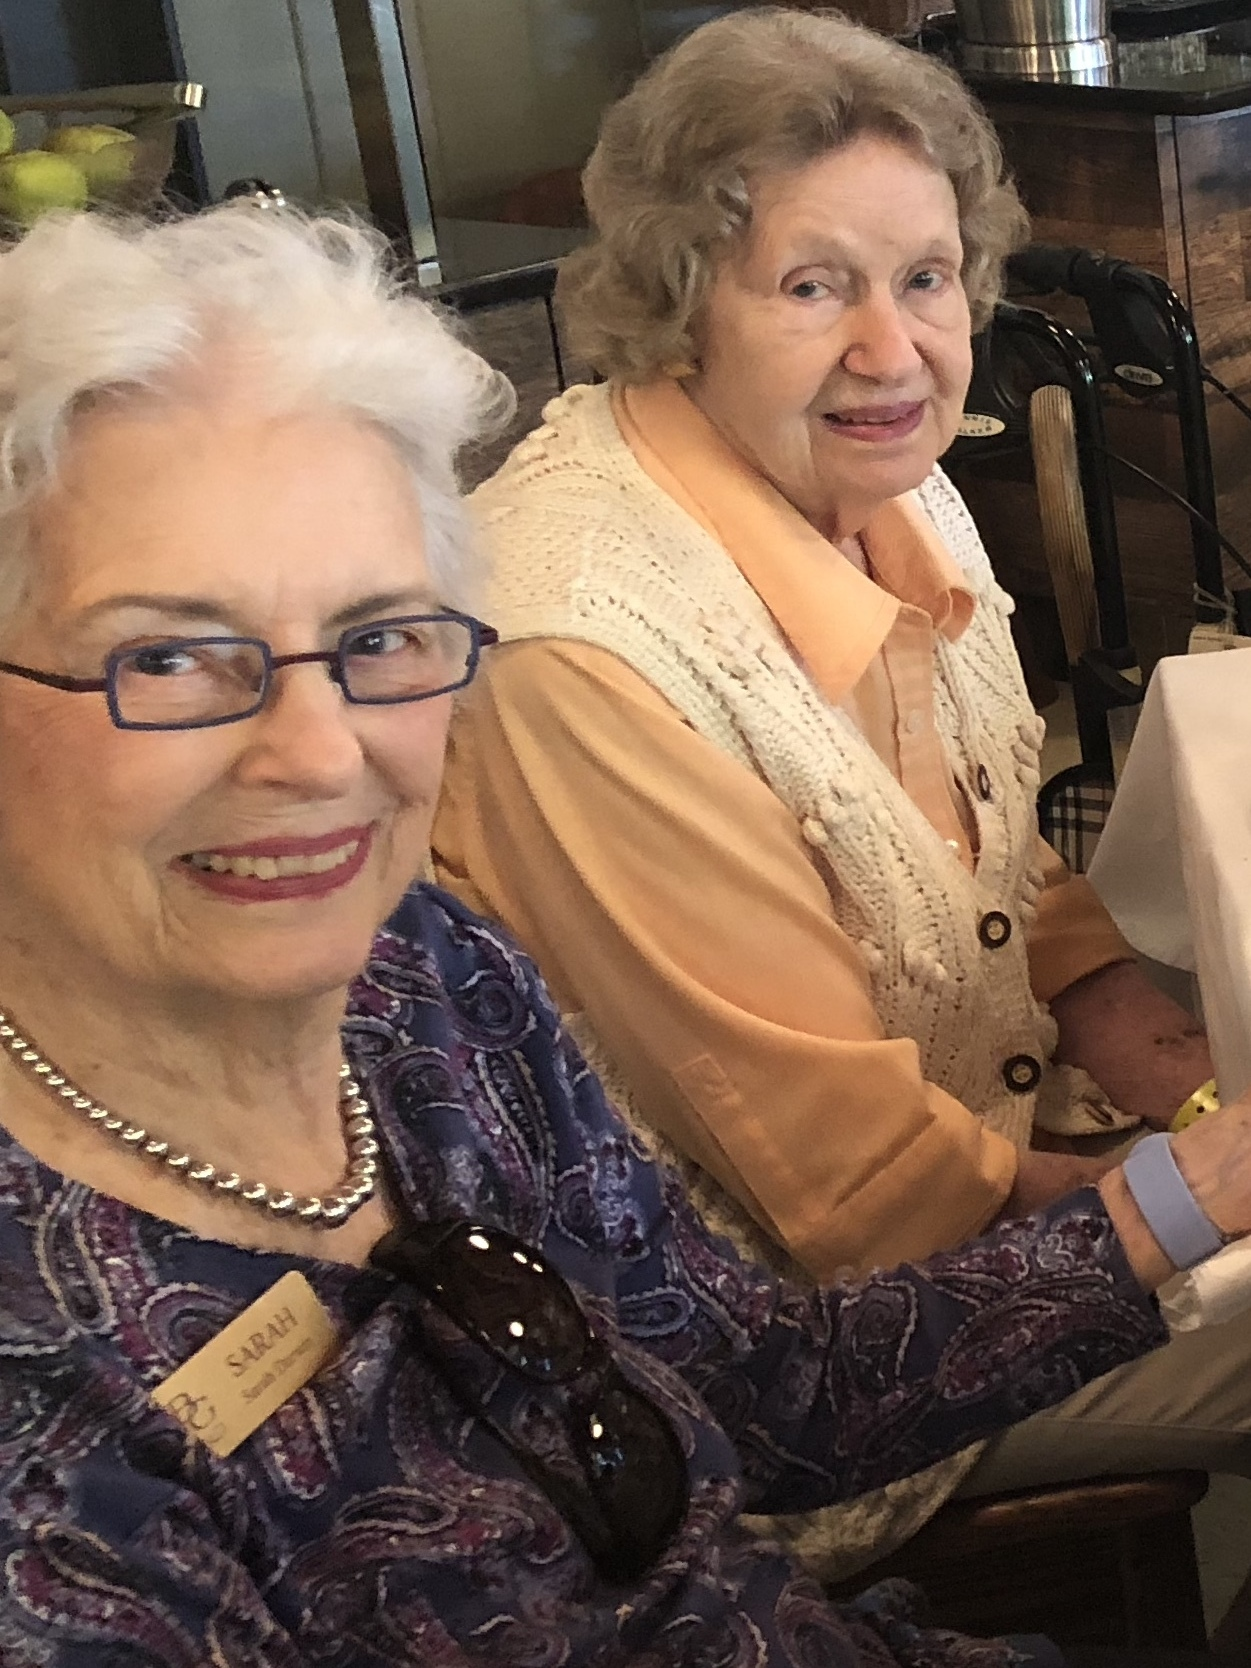 Joyce East (right) with fellow Bishop Gadsden resident Sarah Darwin during their evacuation from their community on the South Carolina coast in September 2018.